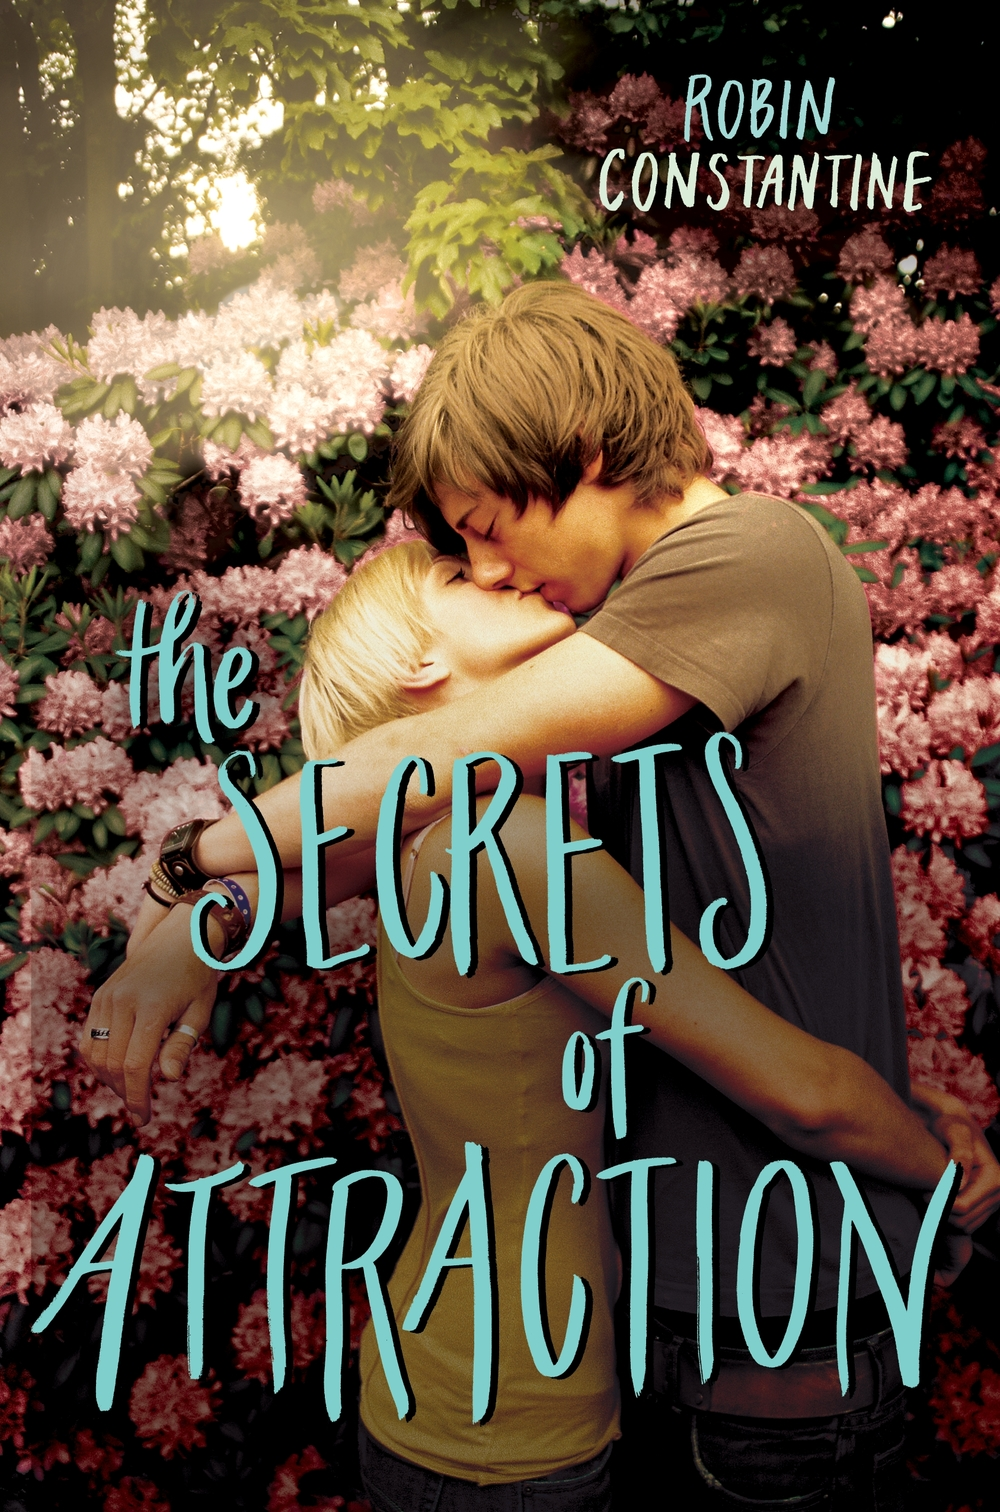 SecretsofAttraction+HC+C.JPG